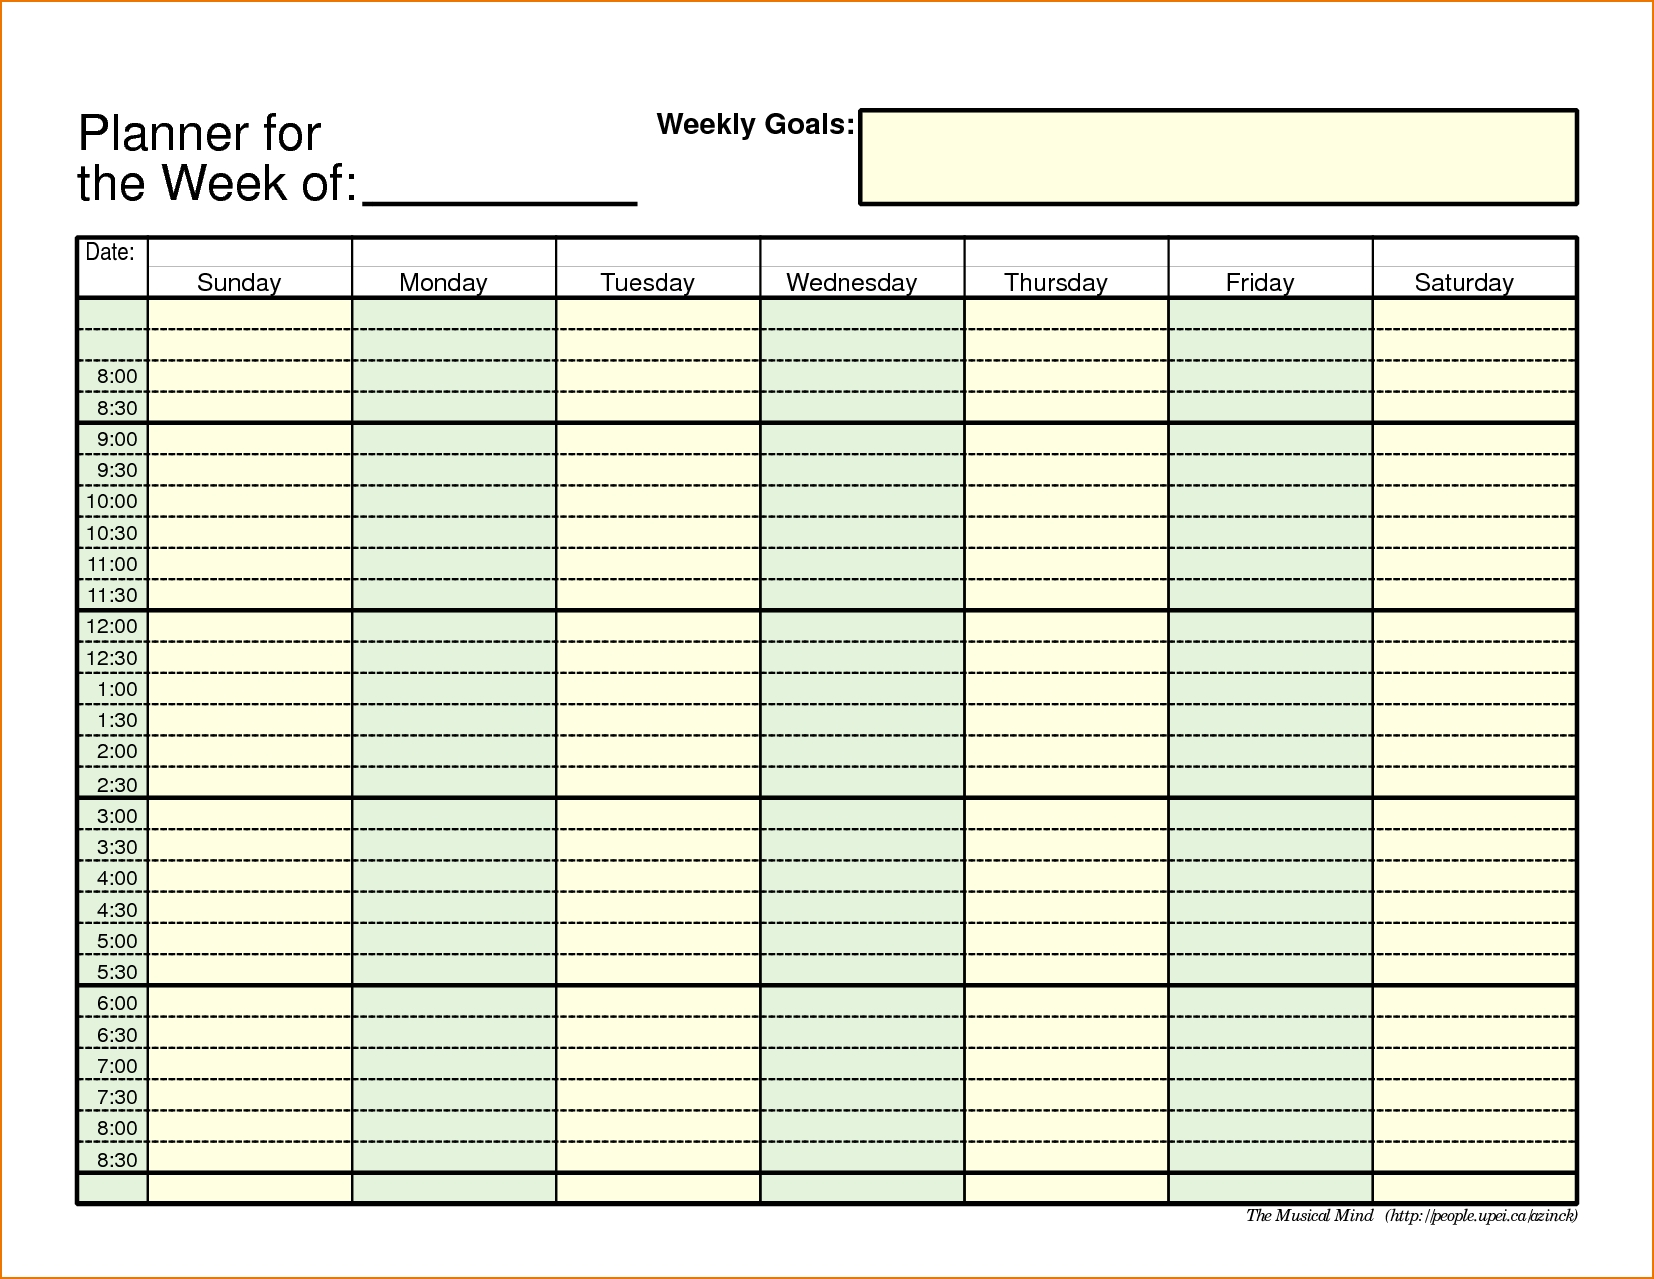 Planning Excel Mplate Weekly Planner Knoswitch Plan Personal Budget with Excel Day Planner Template Free